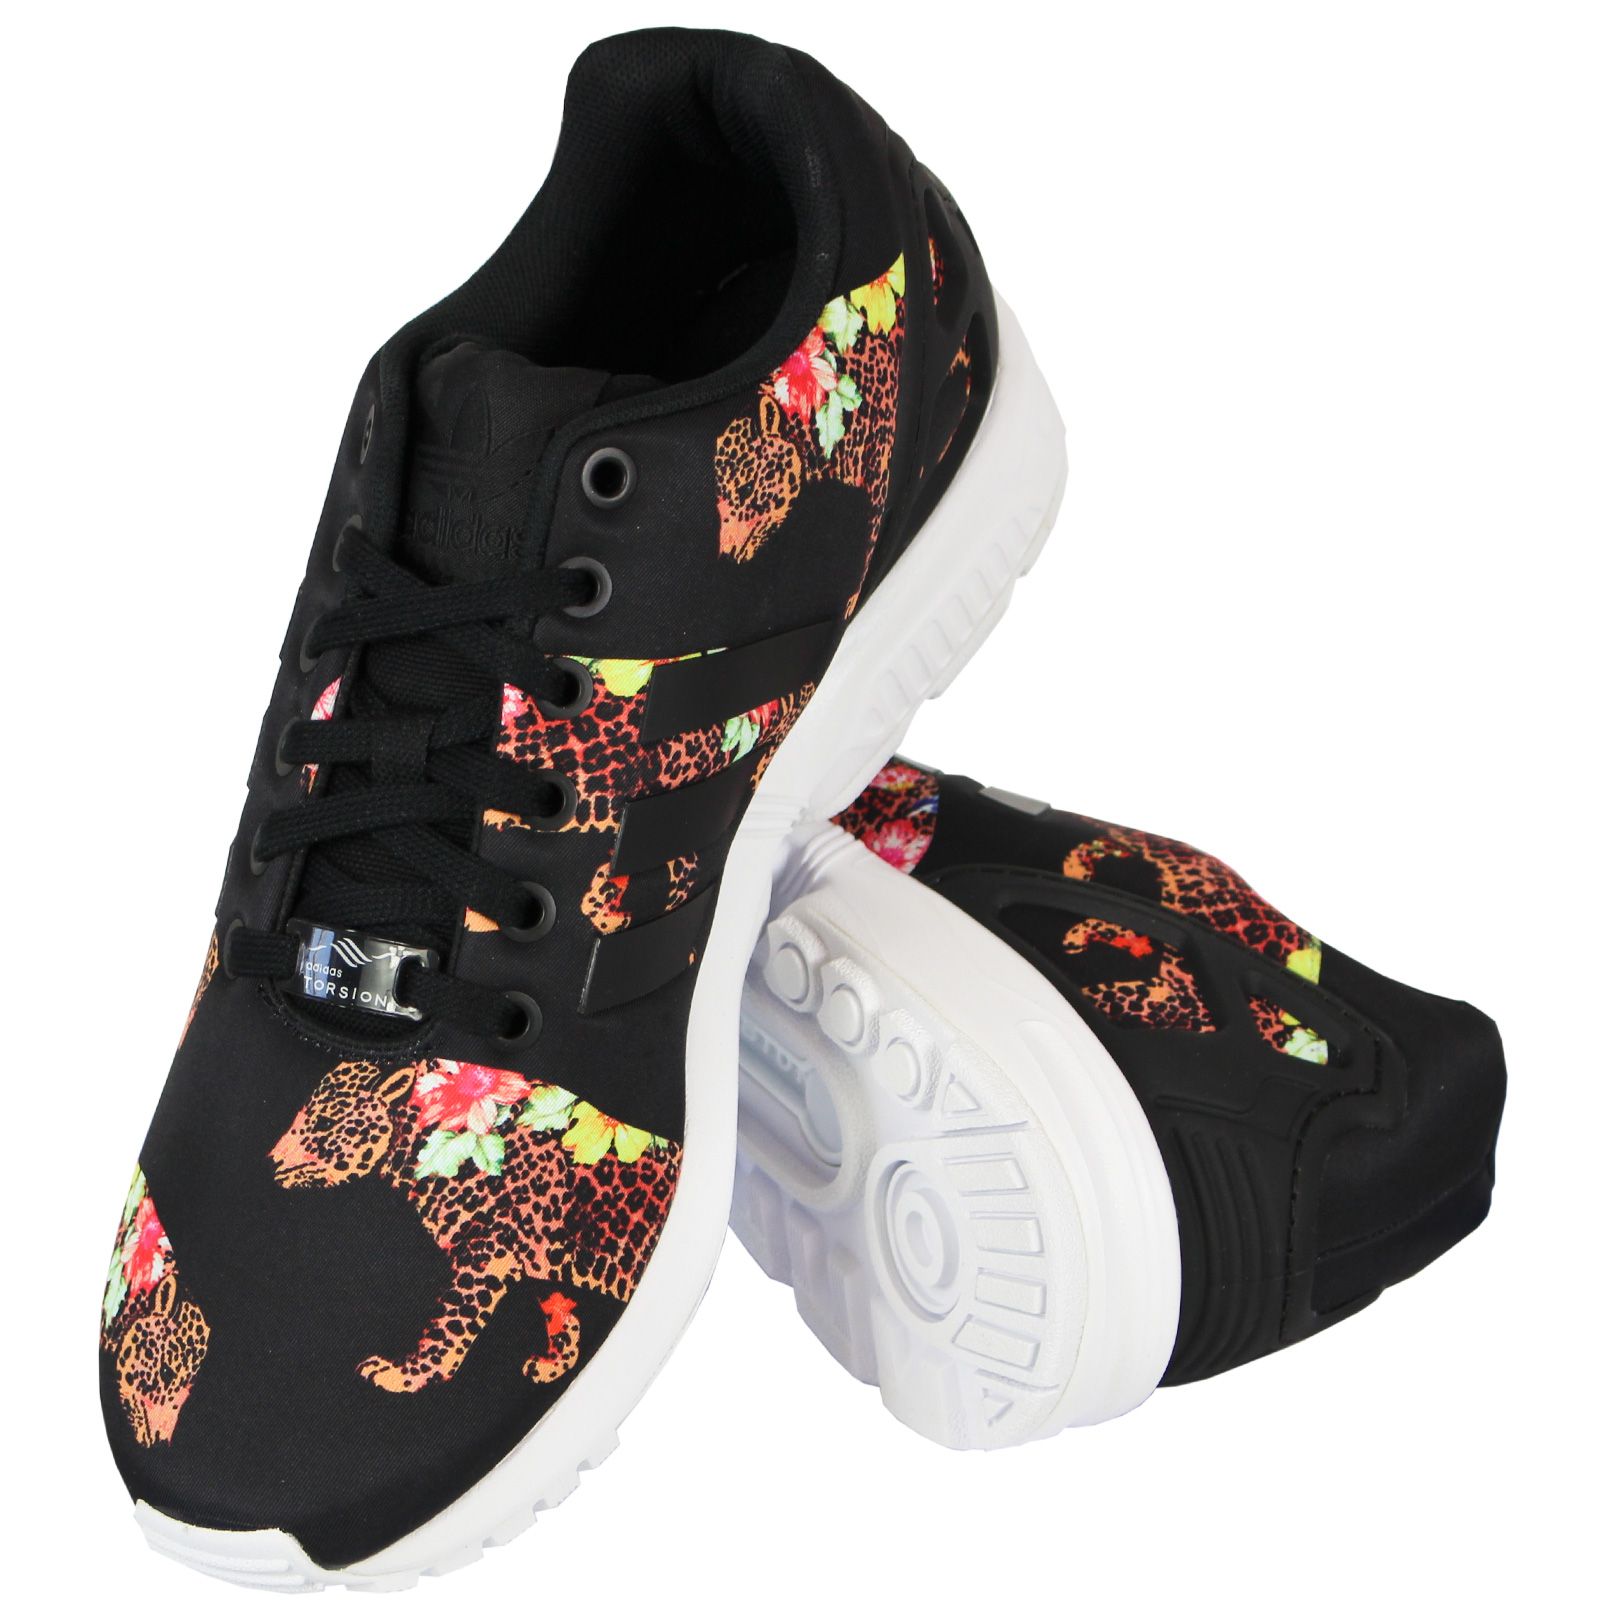 Details about Adidas Originals the Farm Oncada Zx Flux Women's Sneakers Leopard Blossoms Shoes